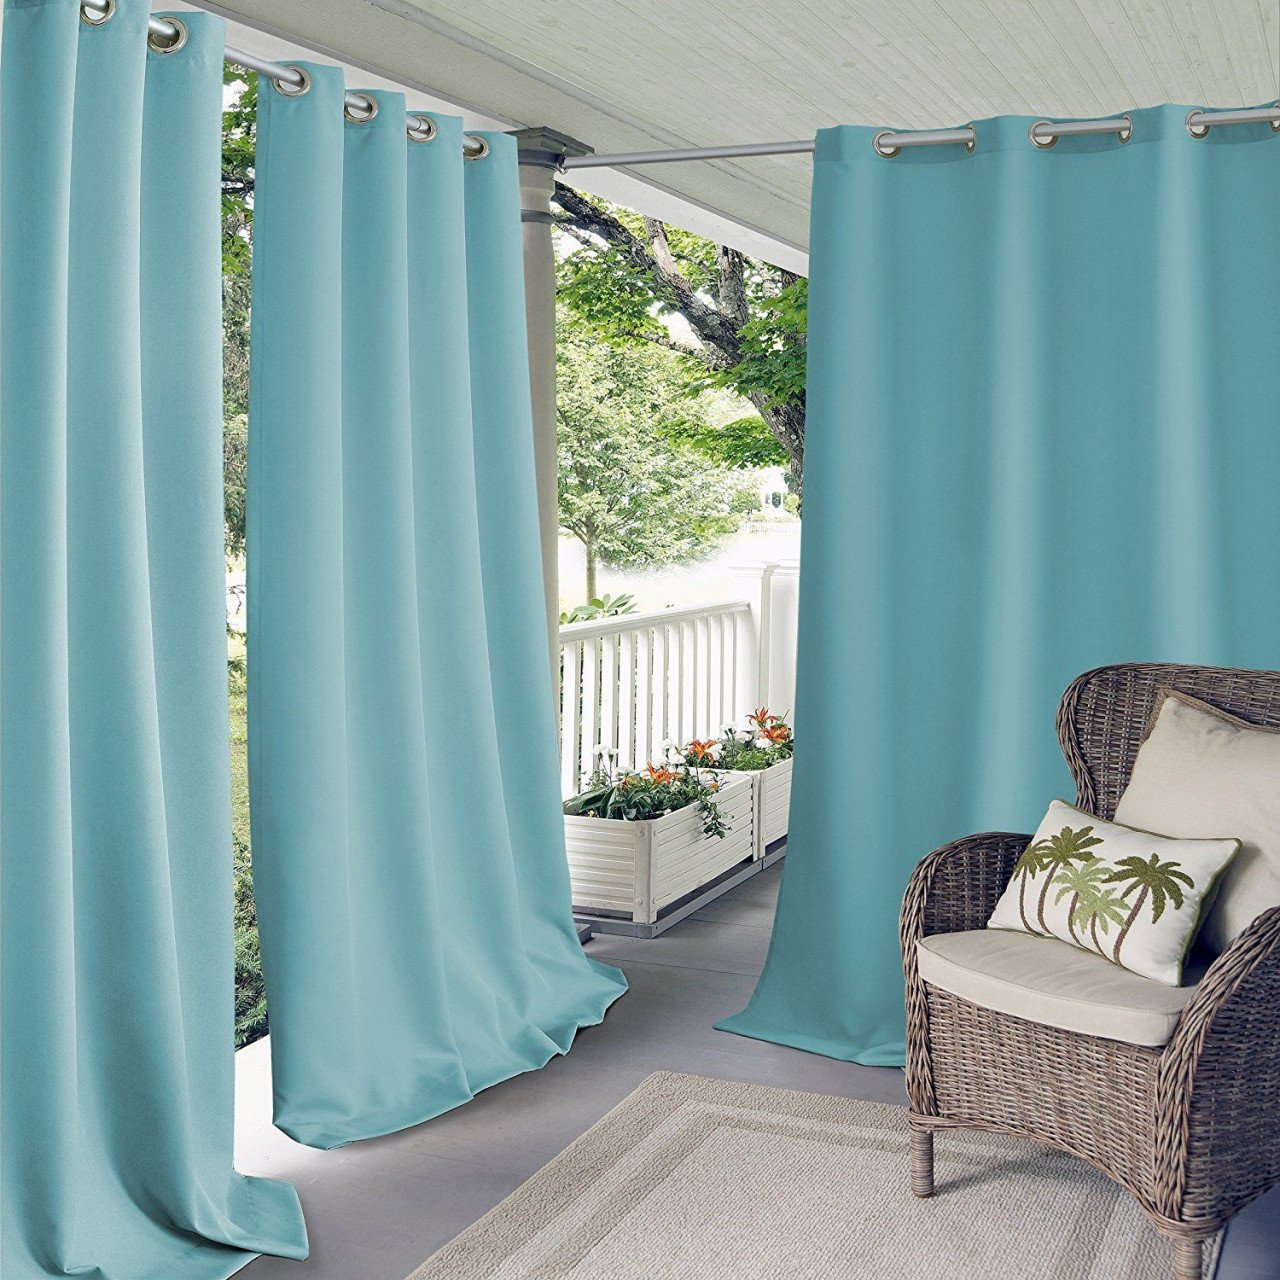 Colorful Curtains for Bedroom Inspirational Outside Curtains for Gazebo — Procura Home Blog